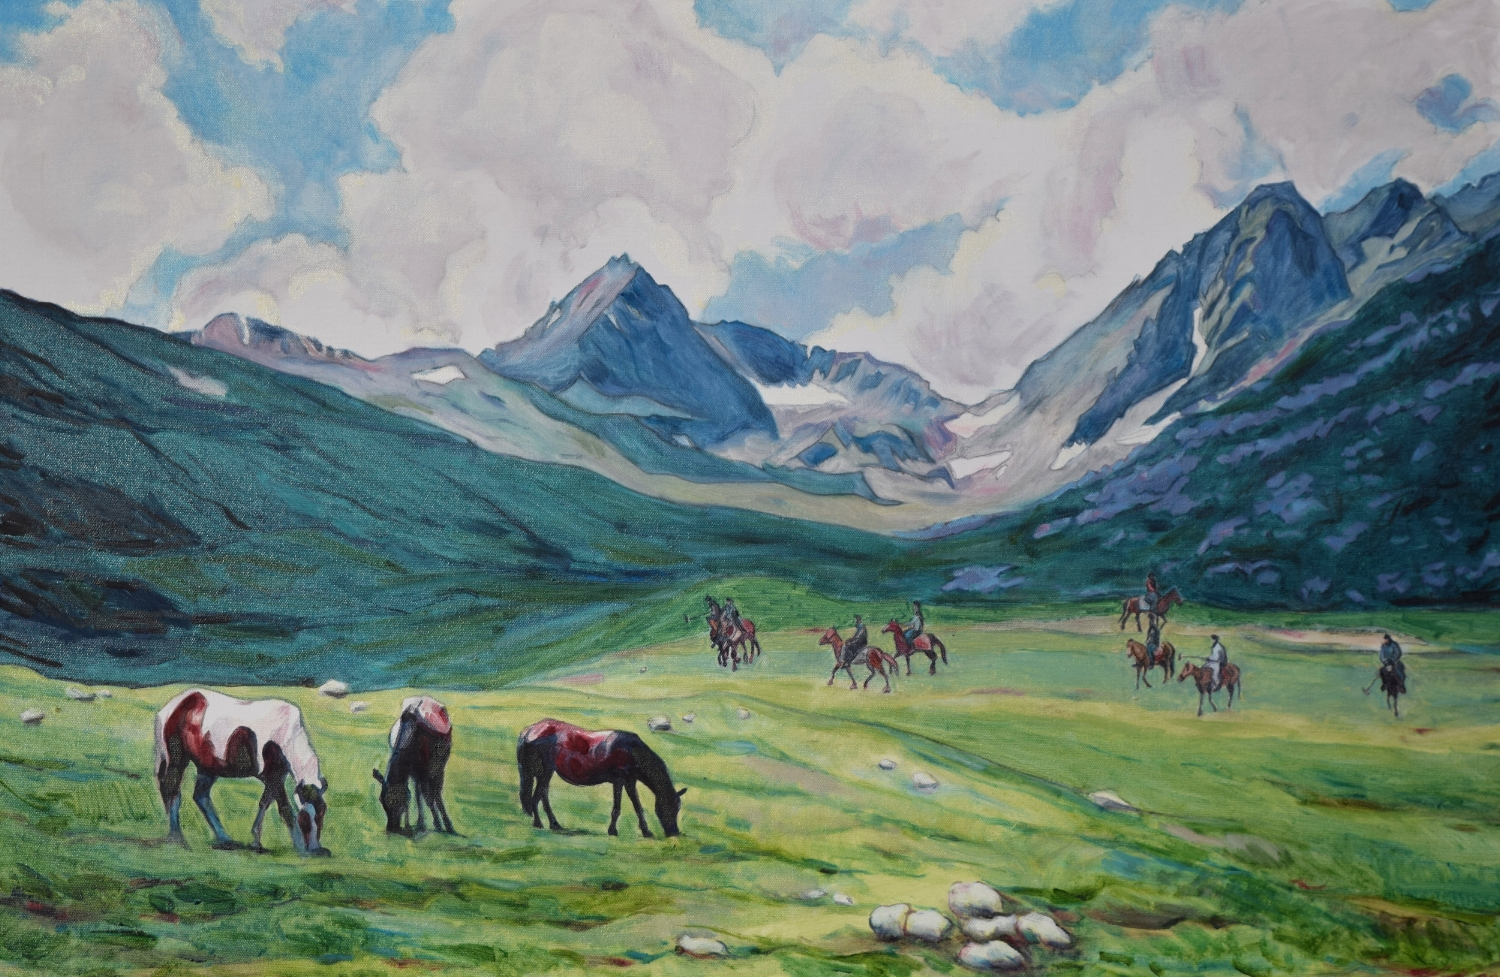 Polo in the Mountains